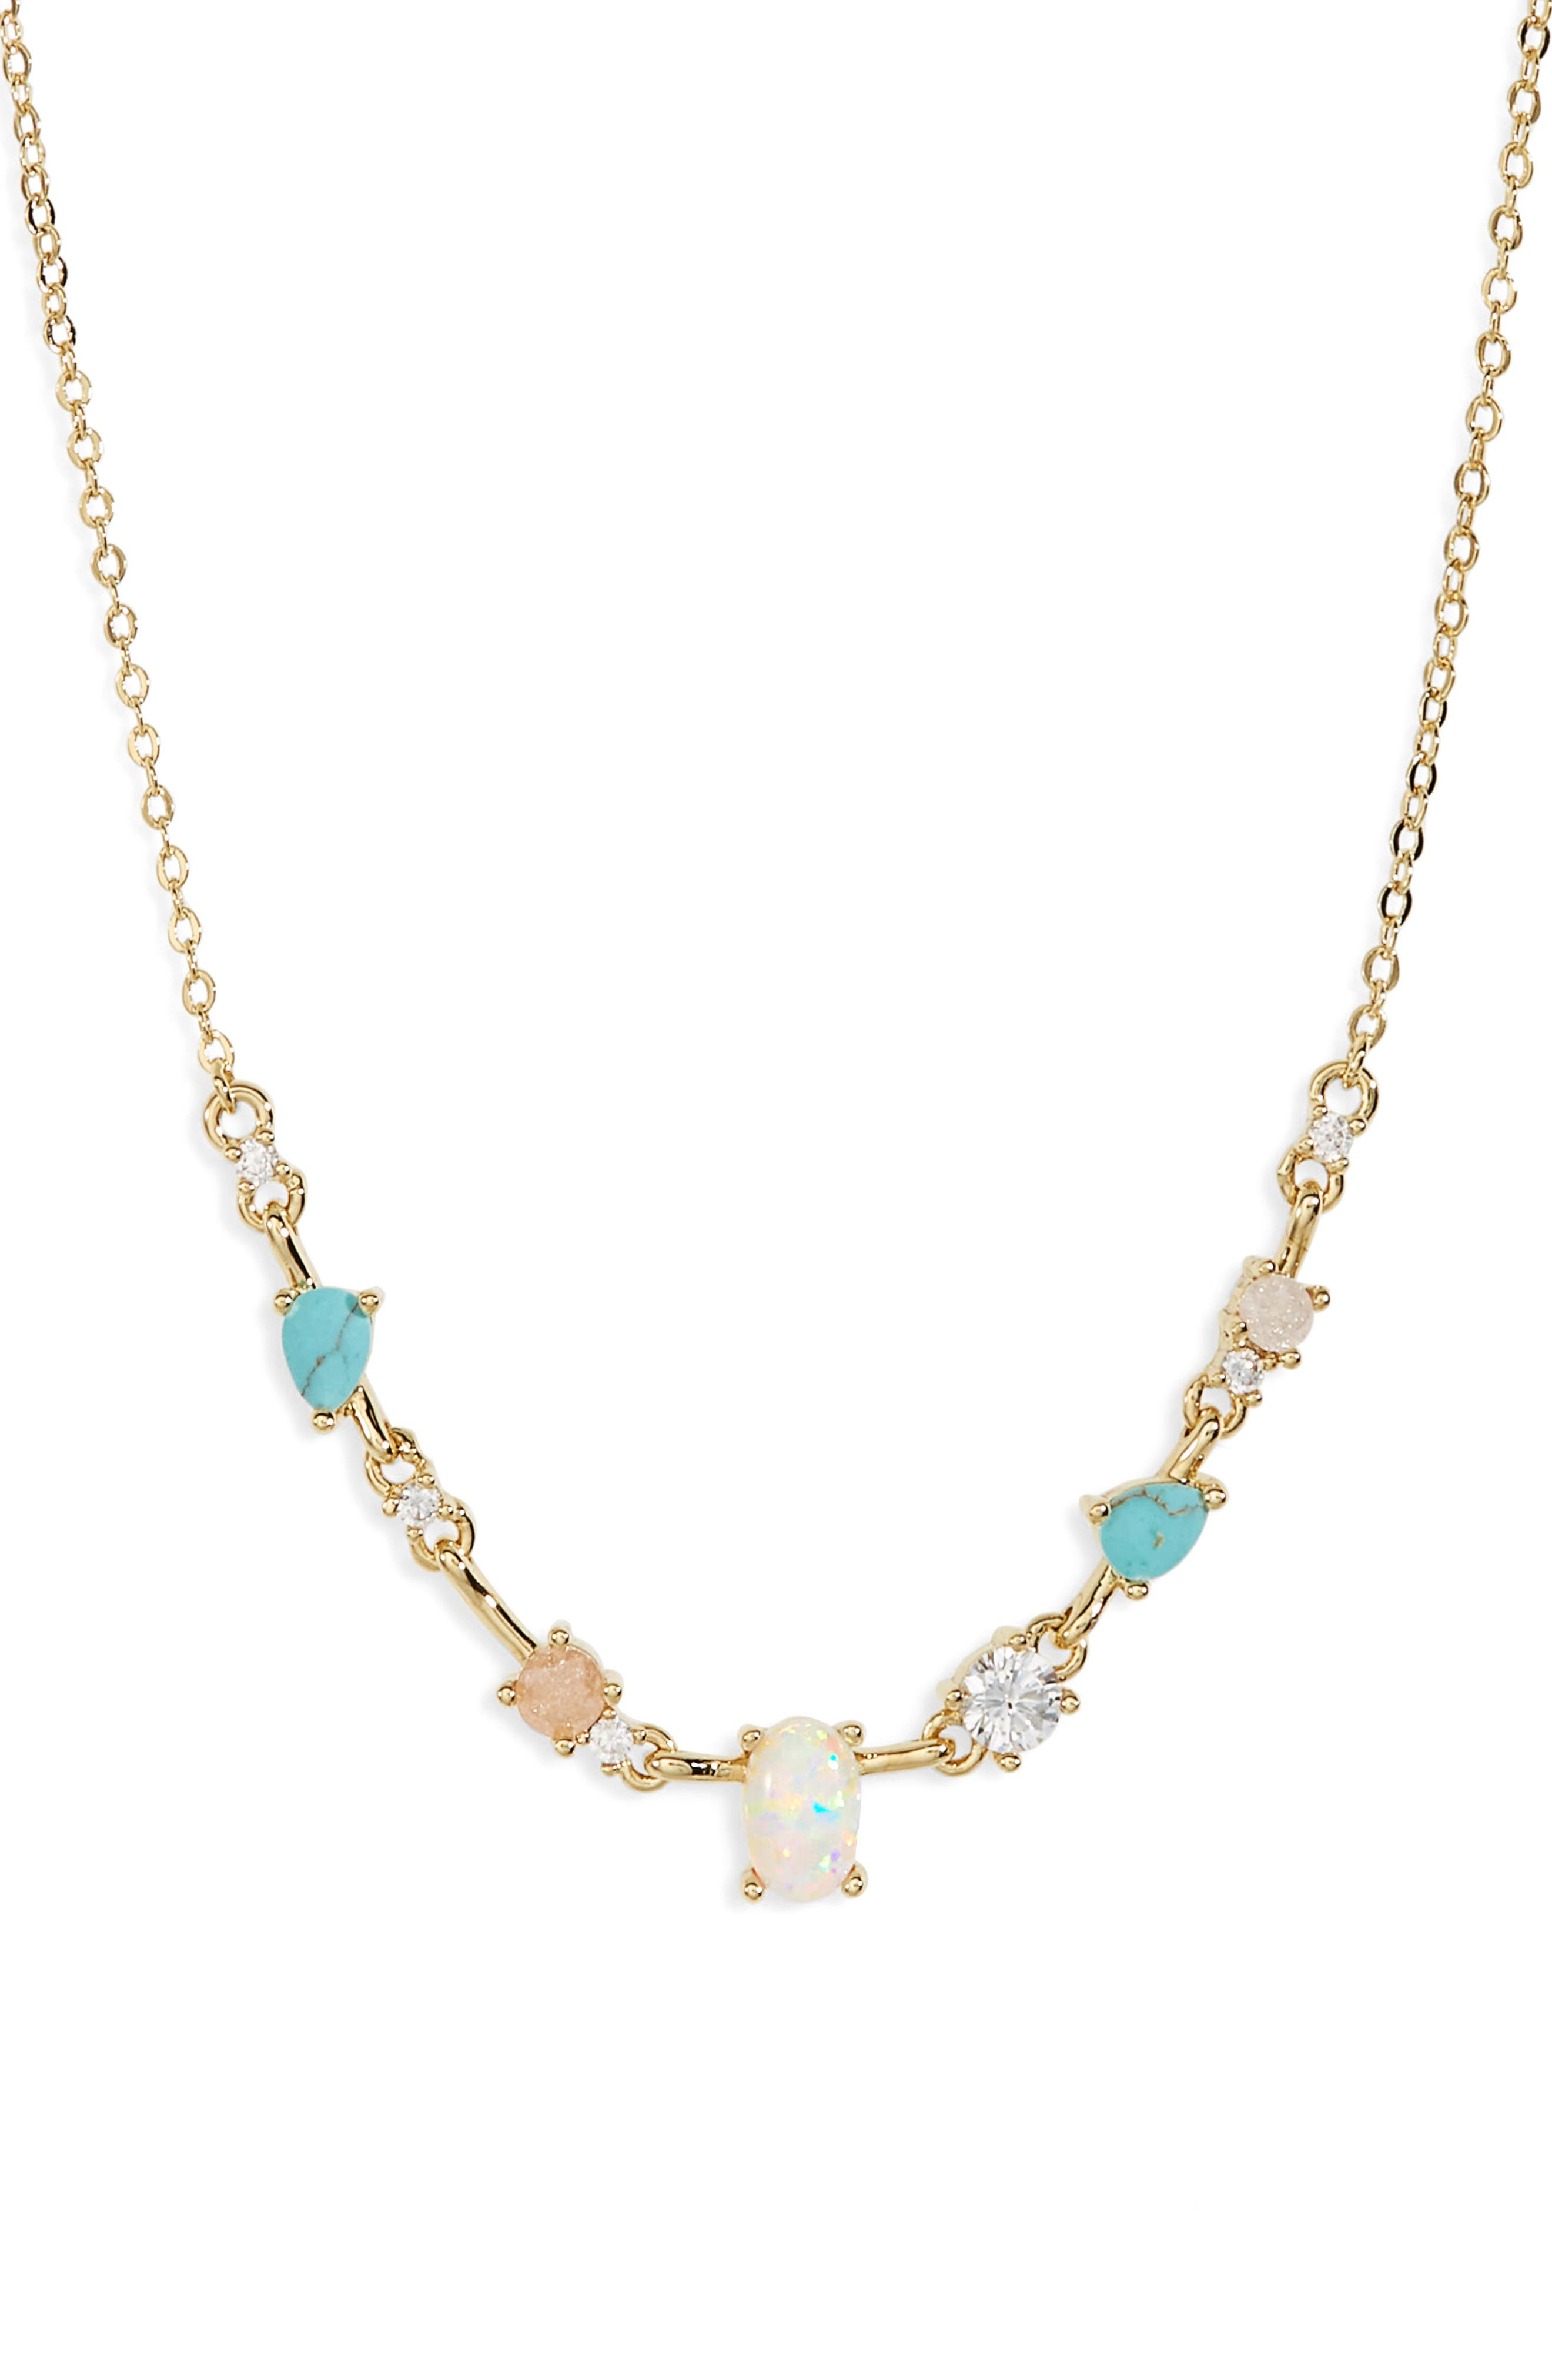 Sparkling stones are spaced out along the edge of this dainty chain. Style Name: Nordstrom Spaced Cubic Zirconia Necklace. Style Number: 6016818. Available in stores.